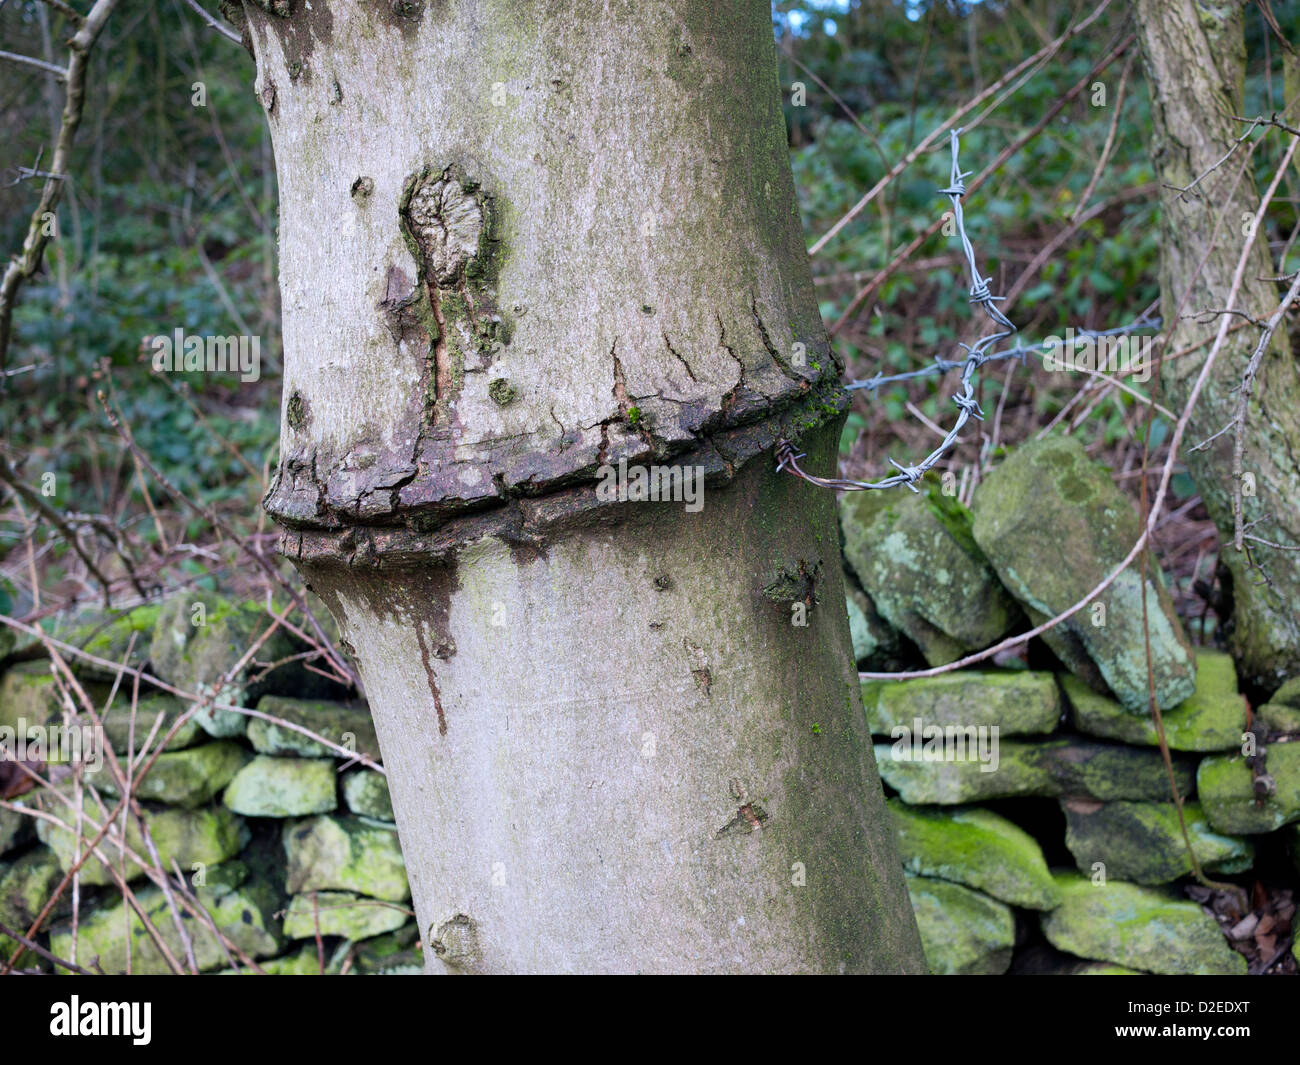 Tree damage due to barbwire being wrapped round tree, England, UK. - Stock Image